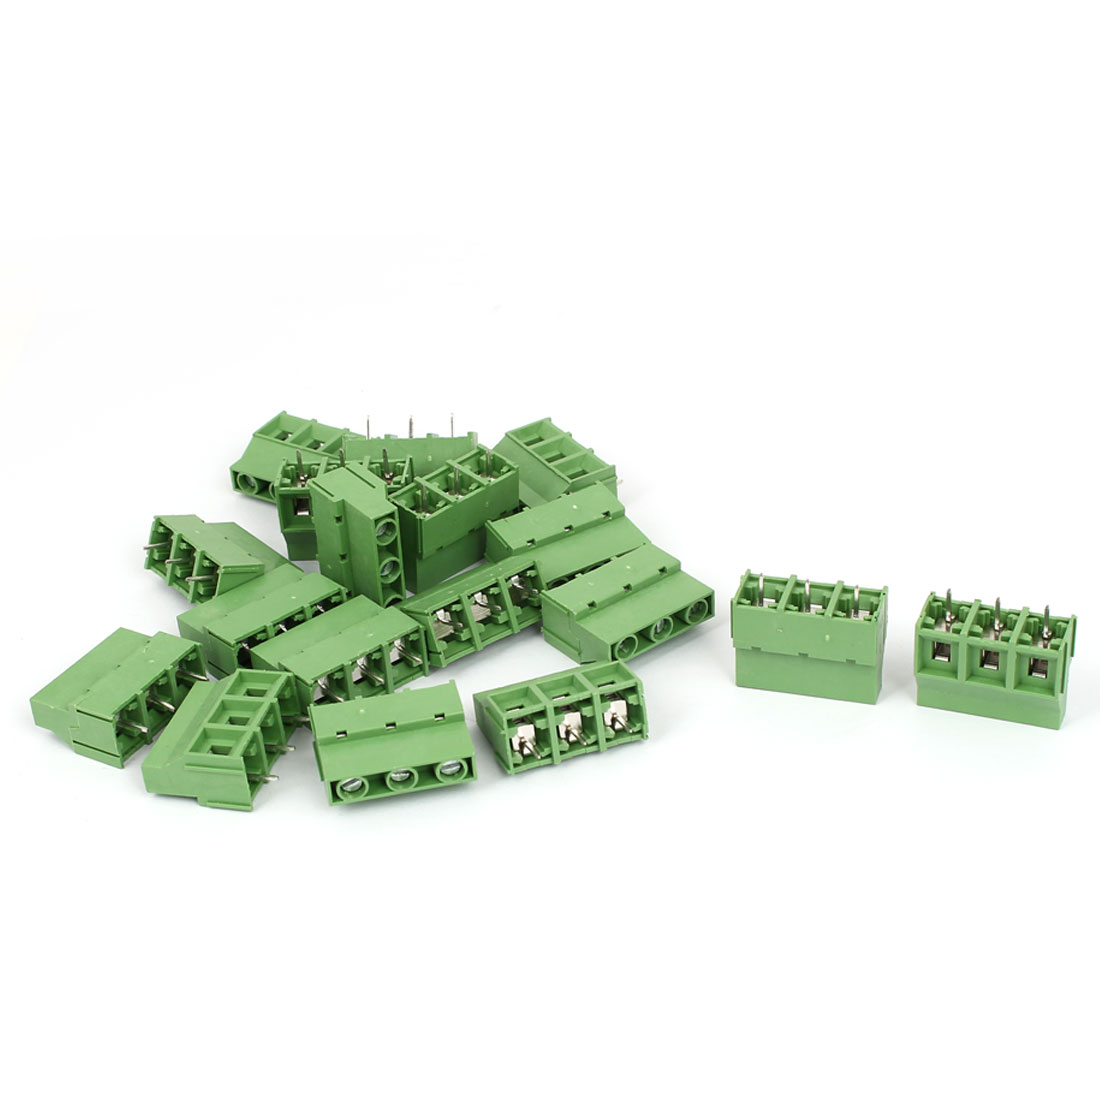 18Pcs 300V KF-950 3 Terminals Plug-in Screw Terminal Block Connector 9mm Pitch Green